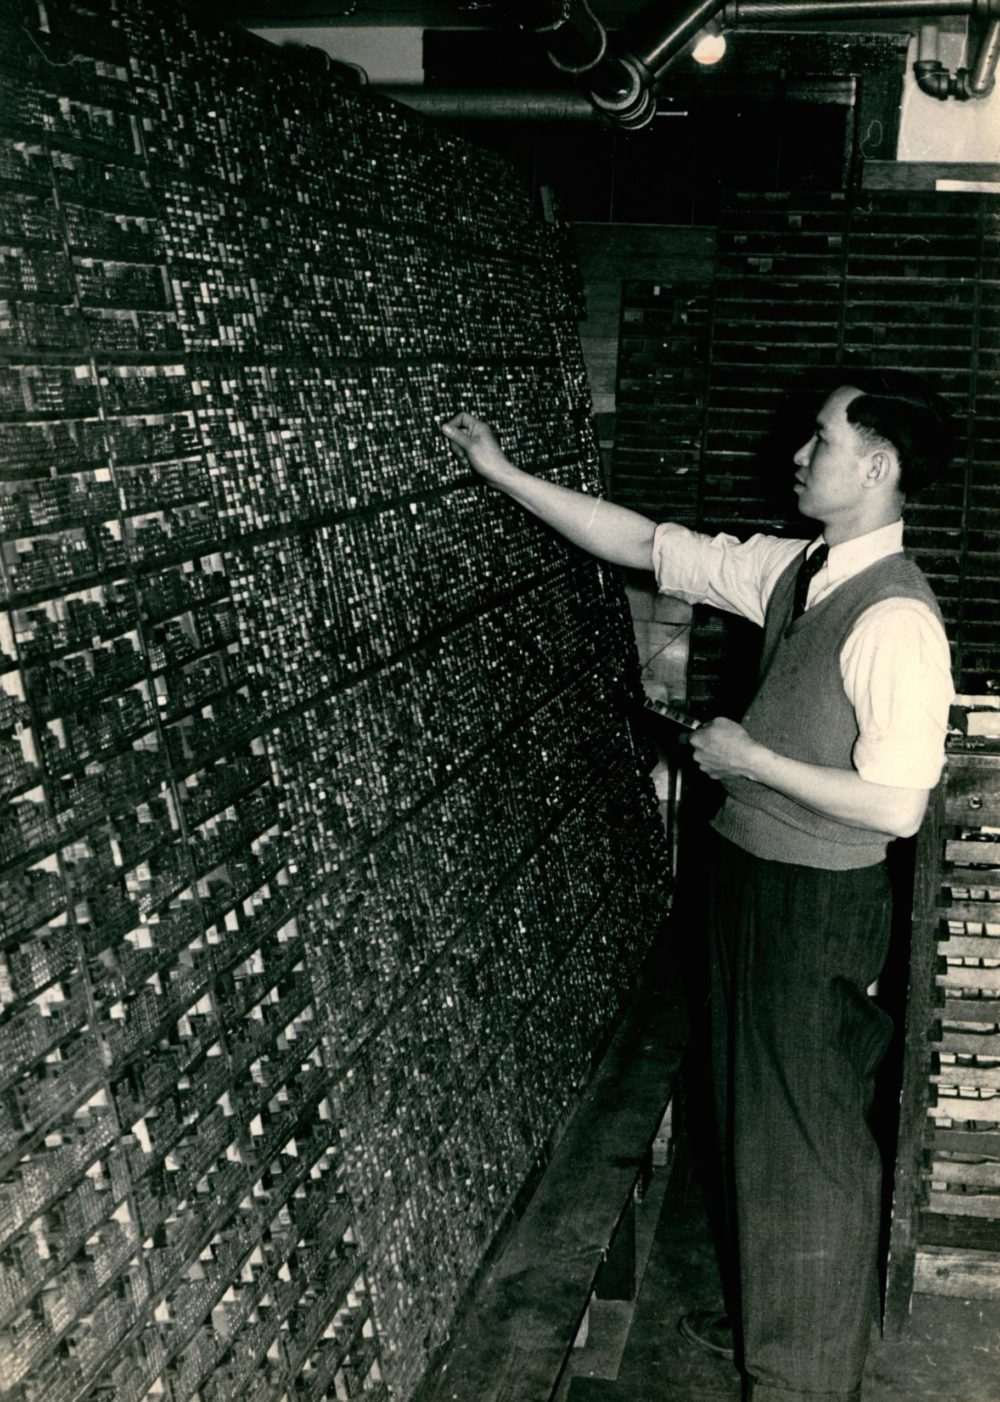 Henry Wong setting type at the Shanghai Printing Company, 1956 / 王耀敏在上海印刷公司排版,1956年